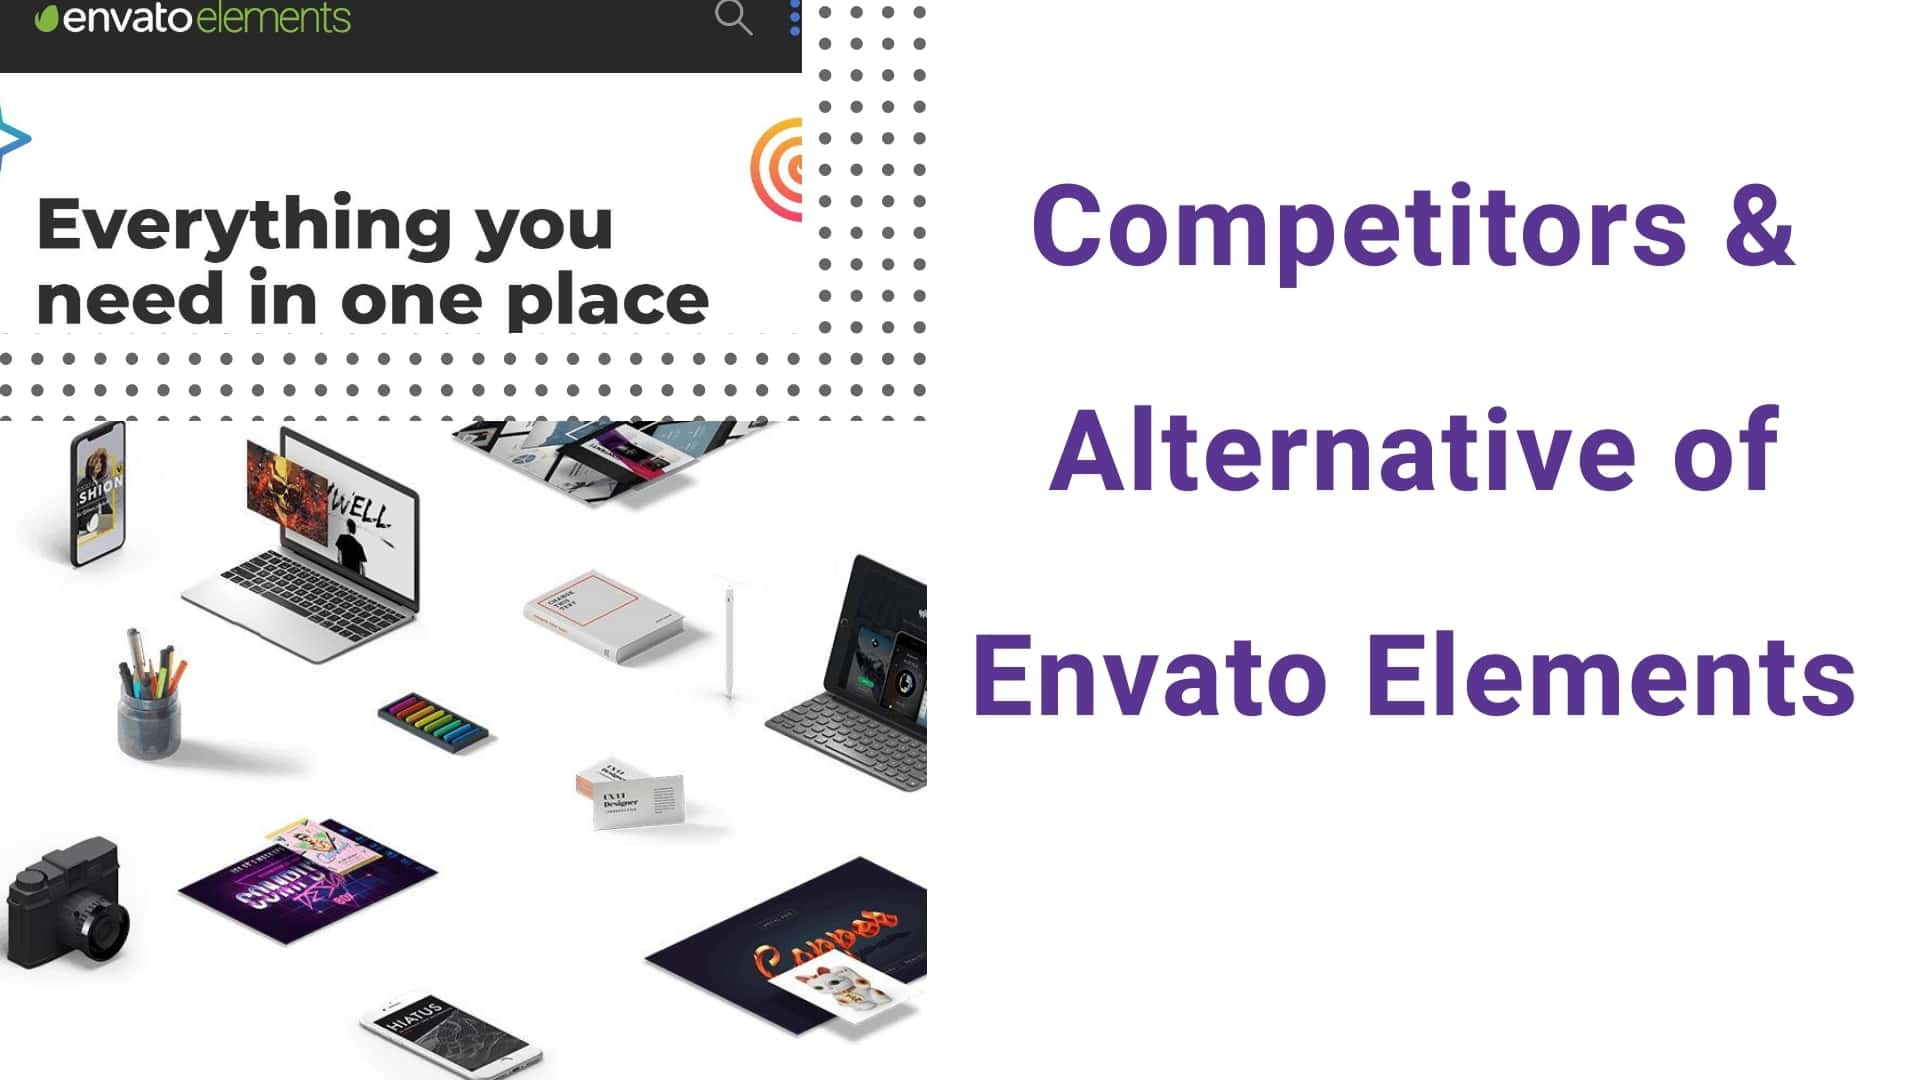 Best 6 strong competitors & alternative of Envato Elements